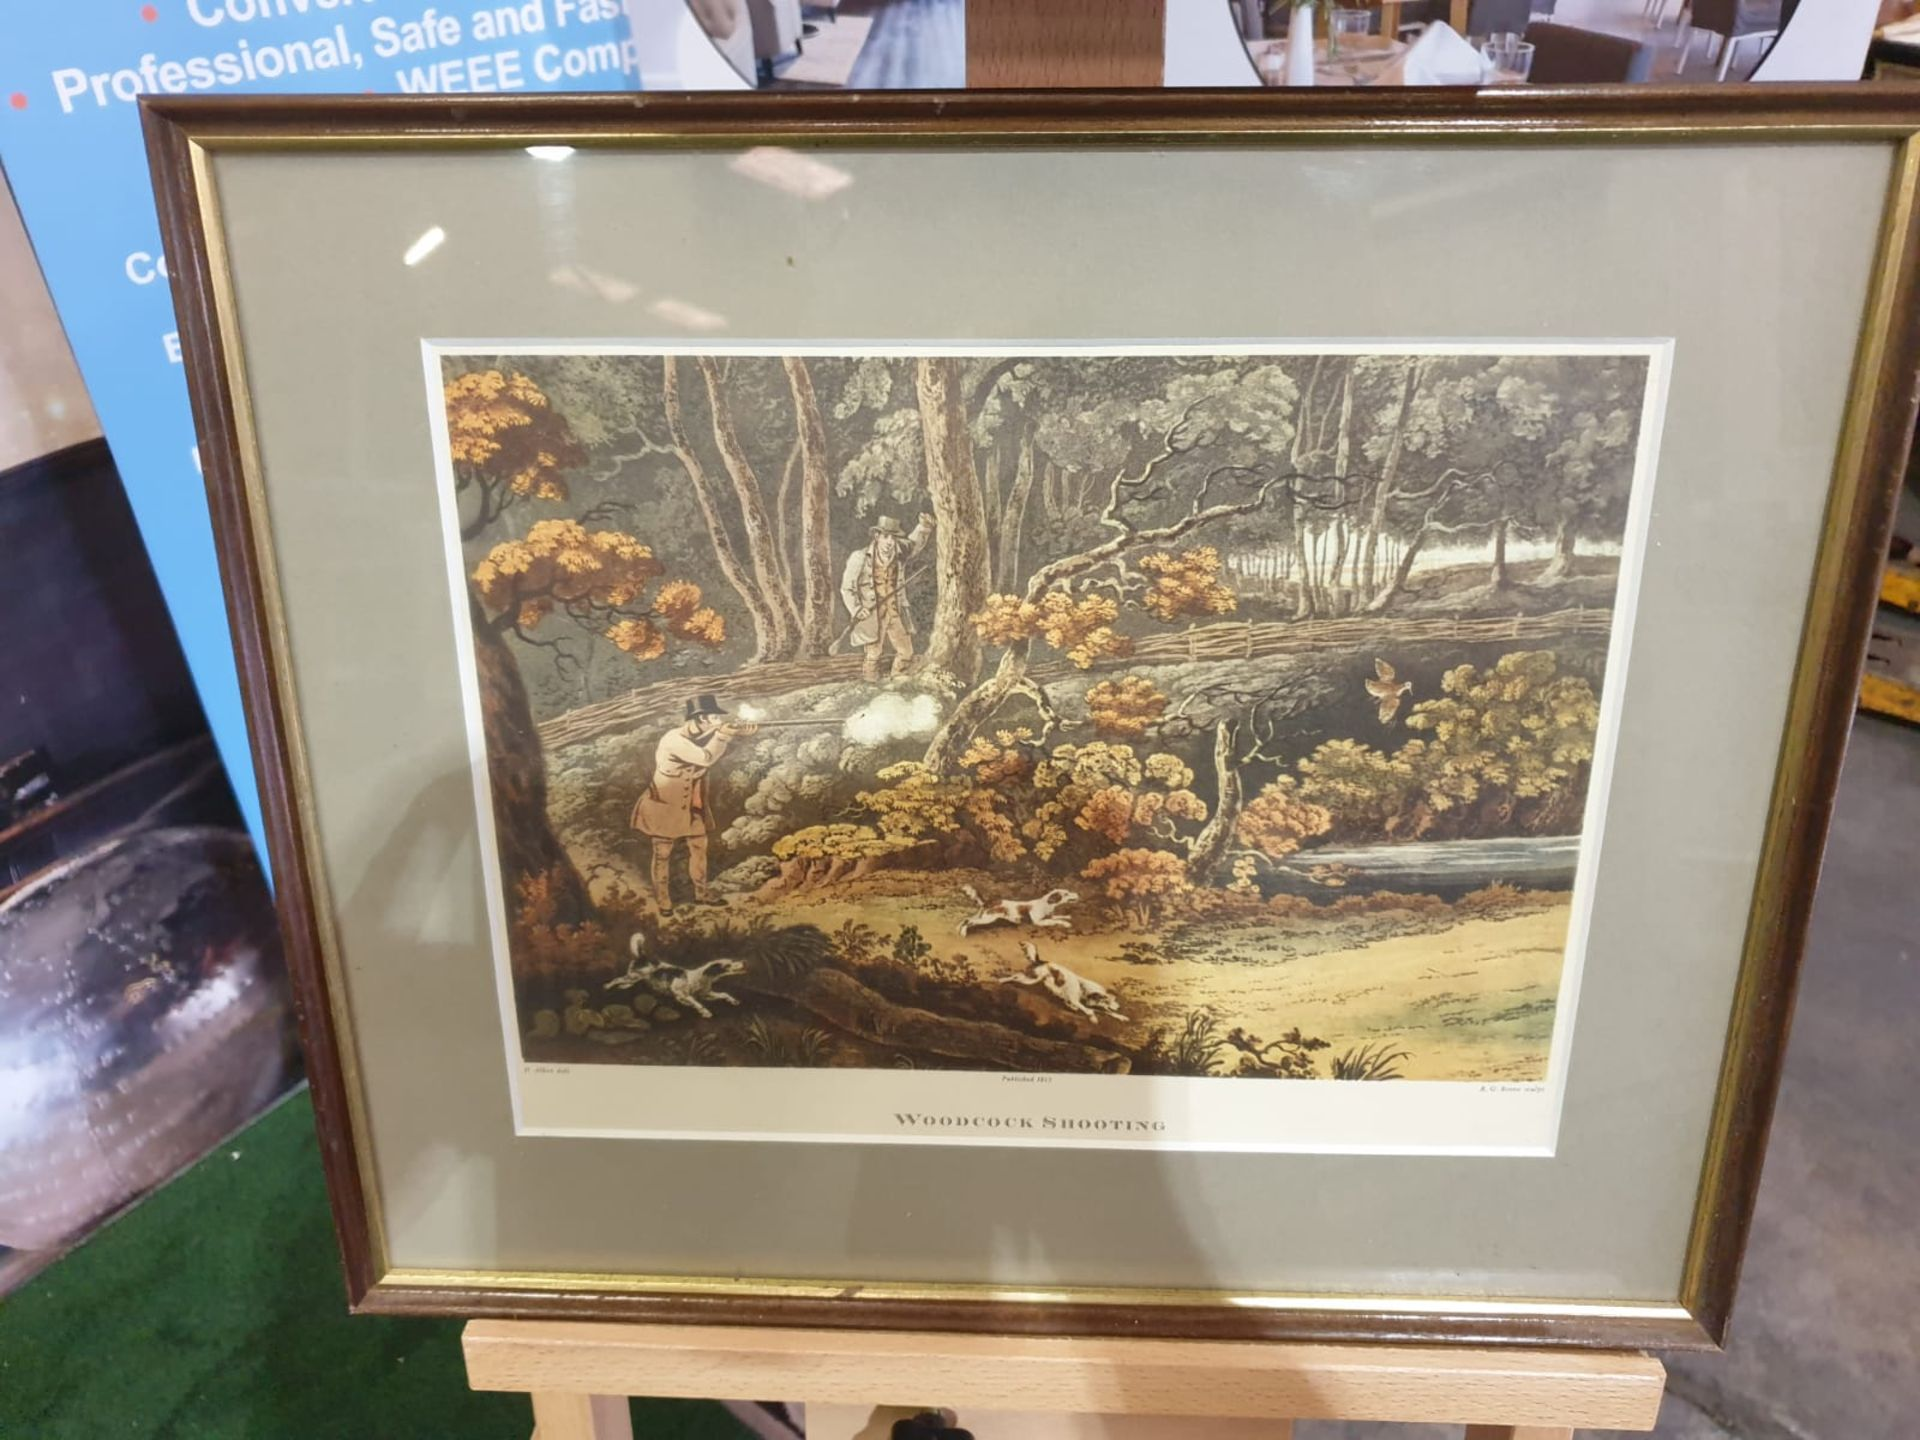 Framed coloured lithograph Woodstock Shooting R.G. Reeve, published 1806 44 x 37cm - Image 4 of 4